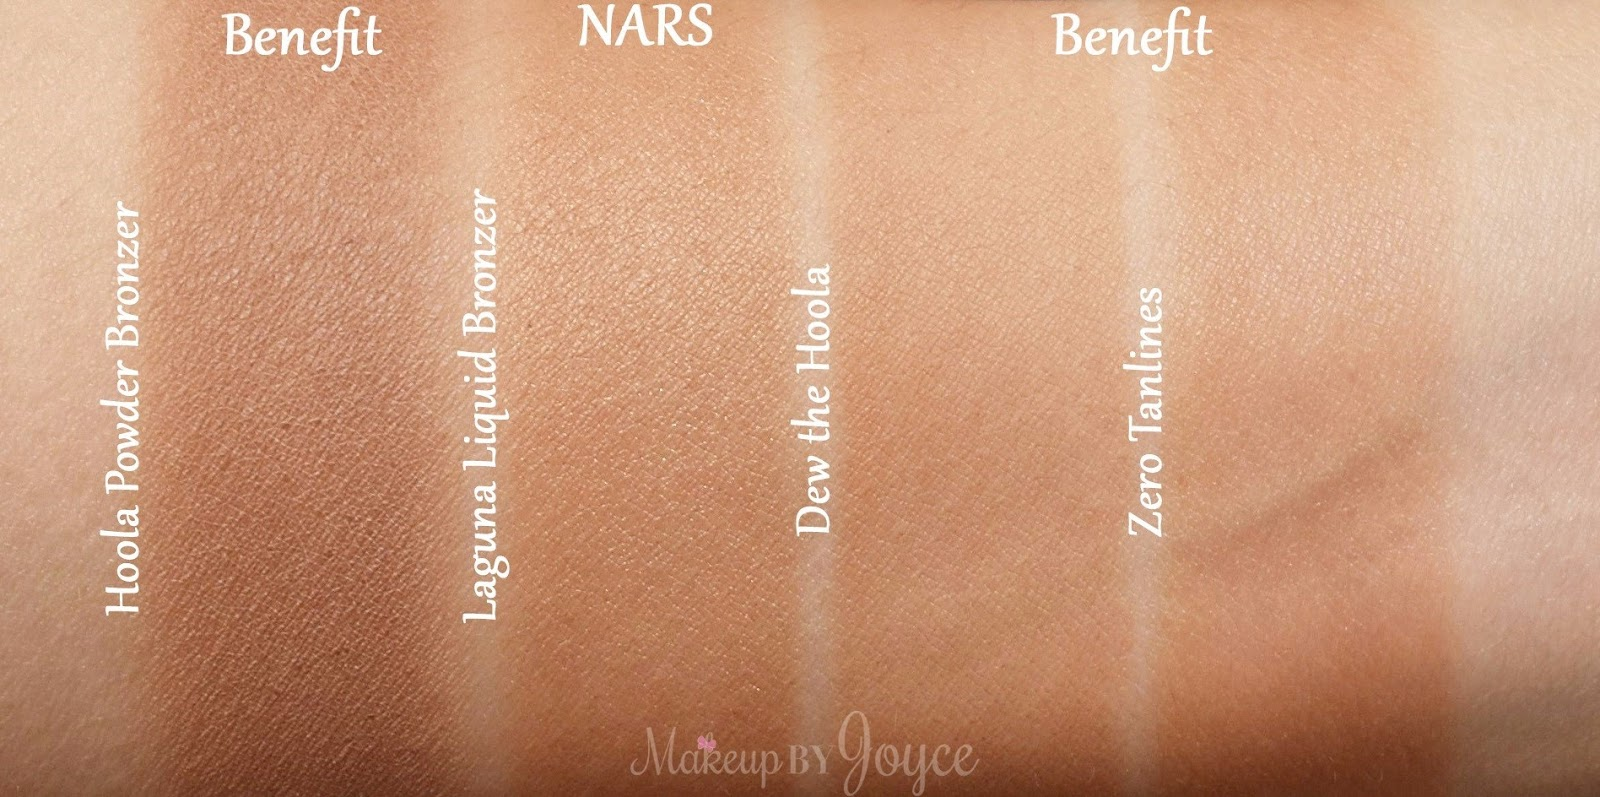 MakeupByJoyce ** !: Swatches + Comparisons: Benefit ...